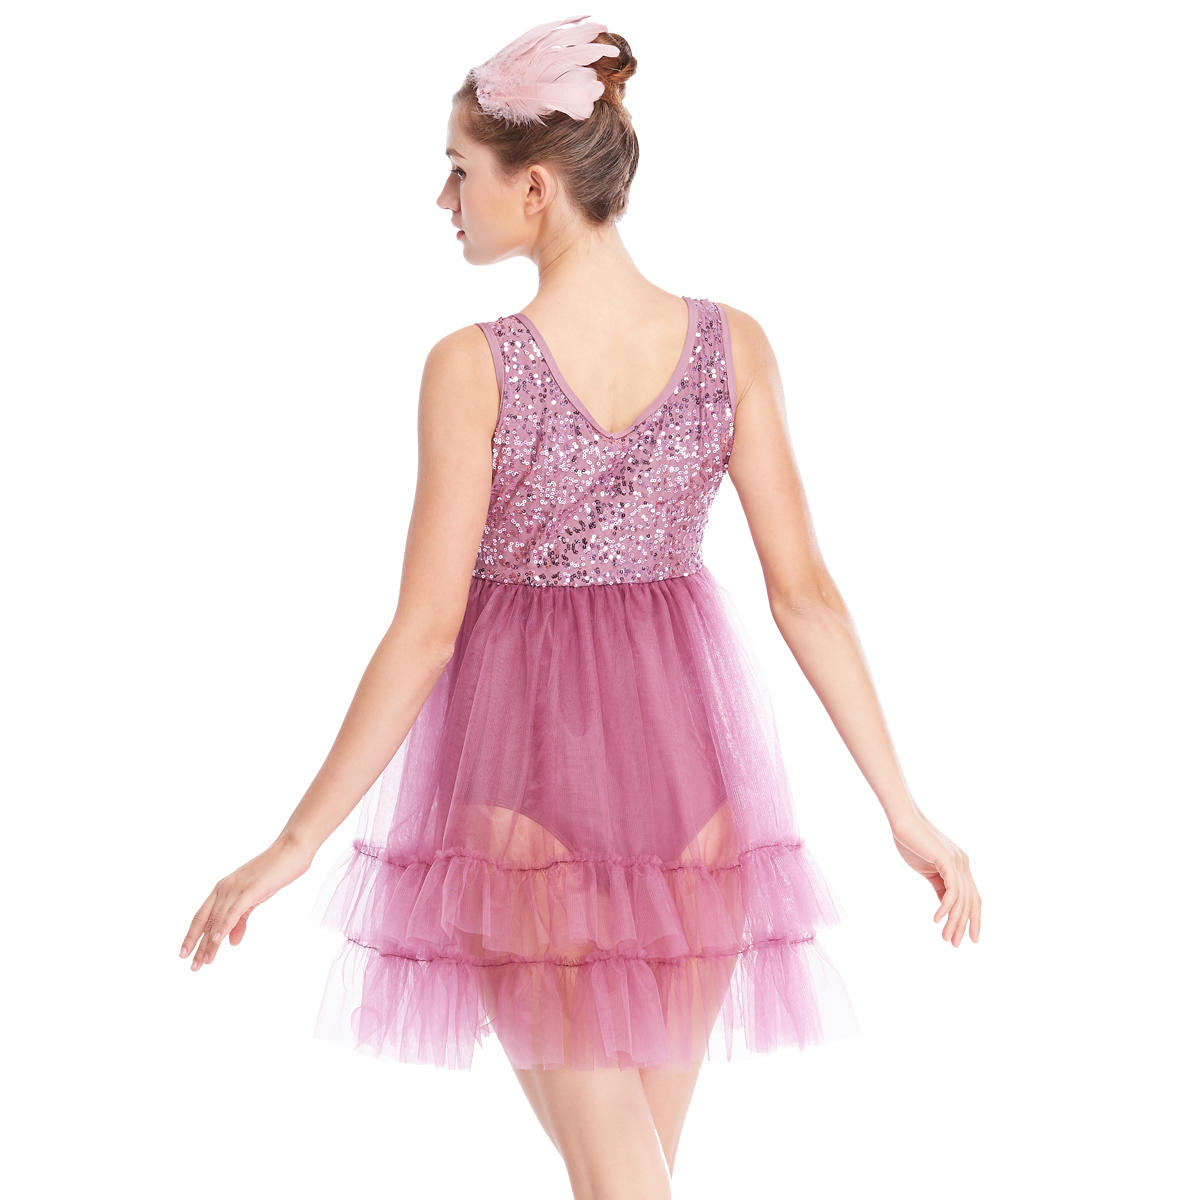 MiDee Contemporary Dance Costumes Dance Costumes Adult Ballet Dress